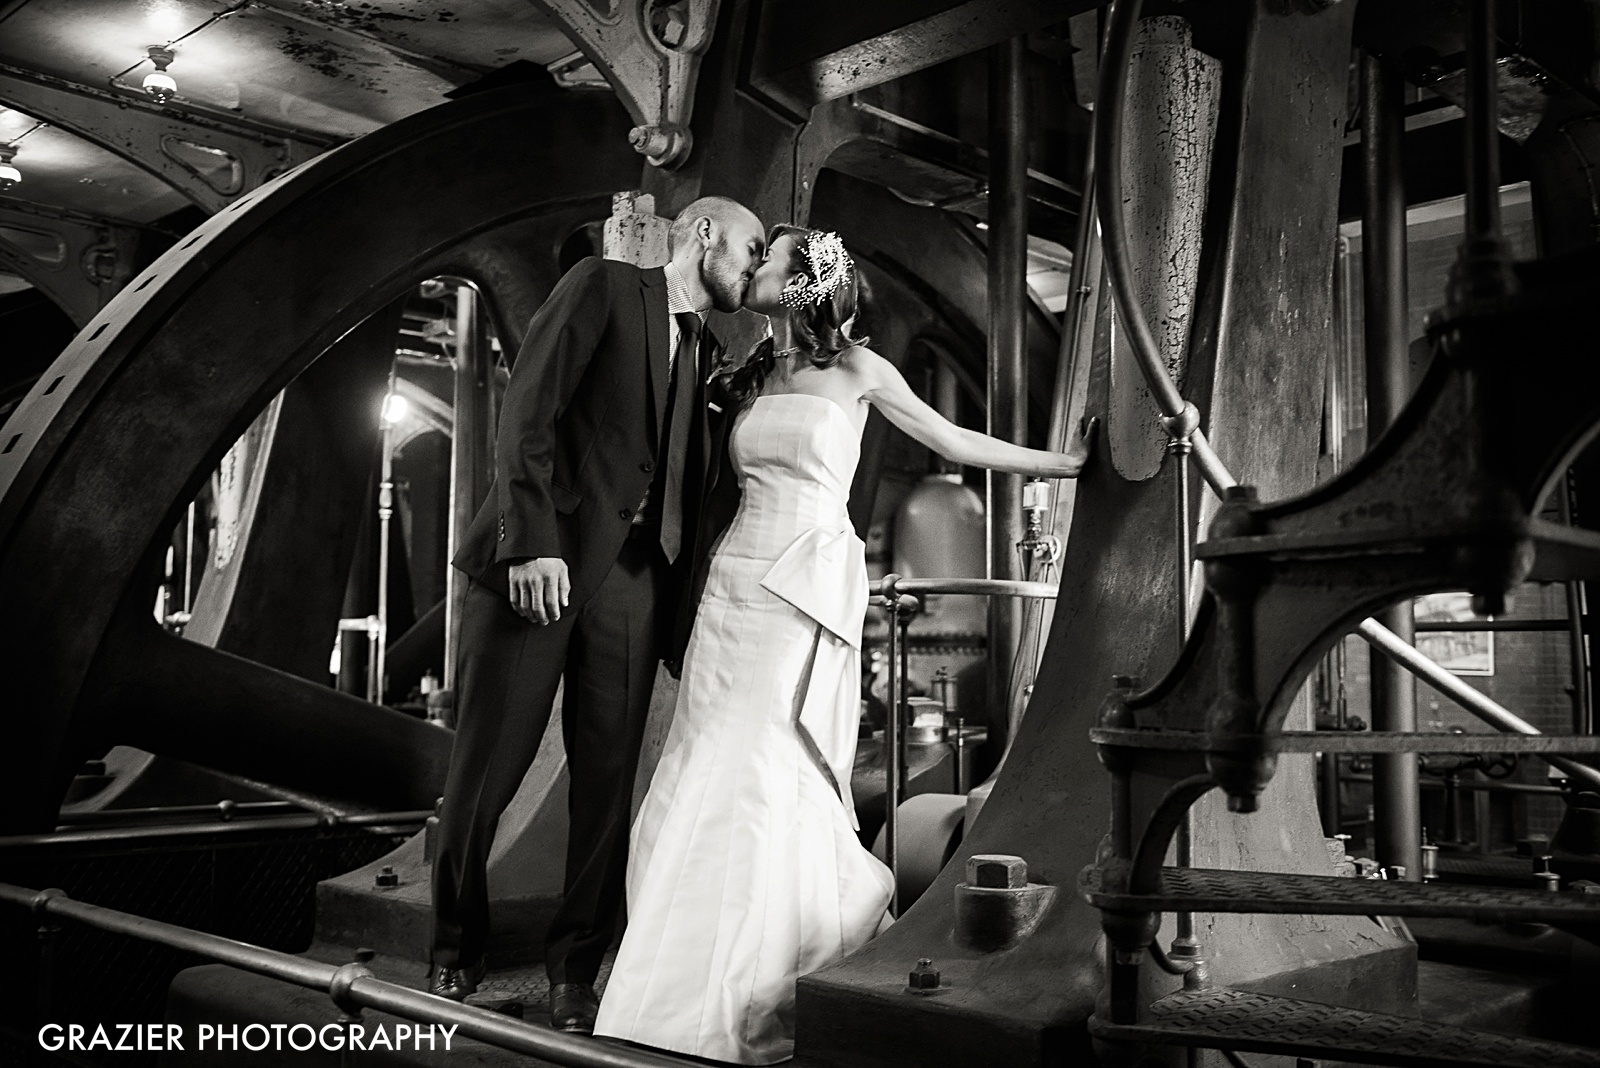 Metropolitan Waterworks Museum Wedding, Boston, by Grazier Photography, unique bride and groom portrait #industrialwedding #waterworkswedding #bostonwedding #bostonweddingphotography